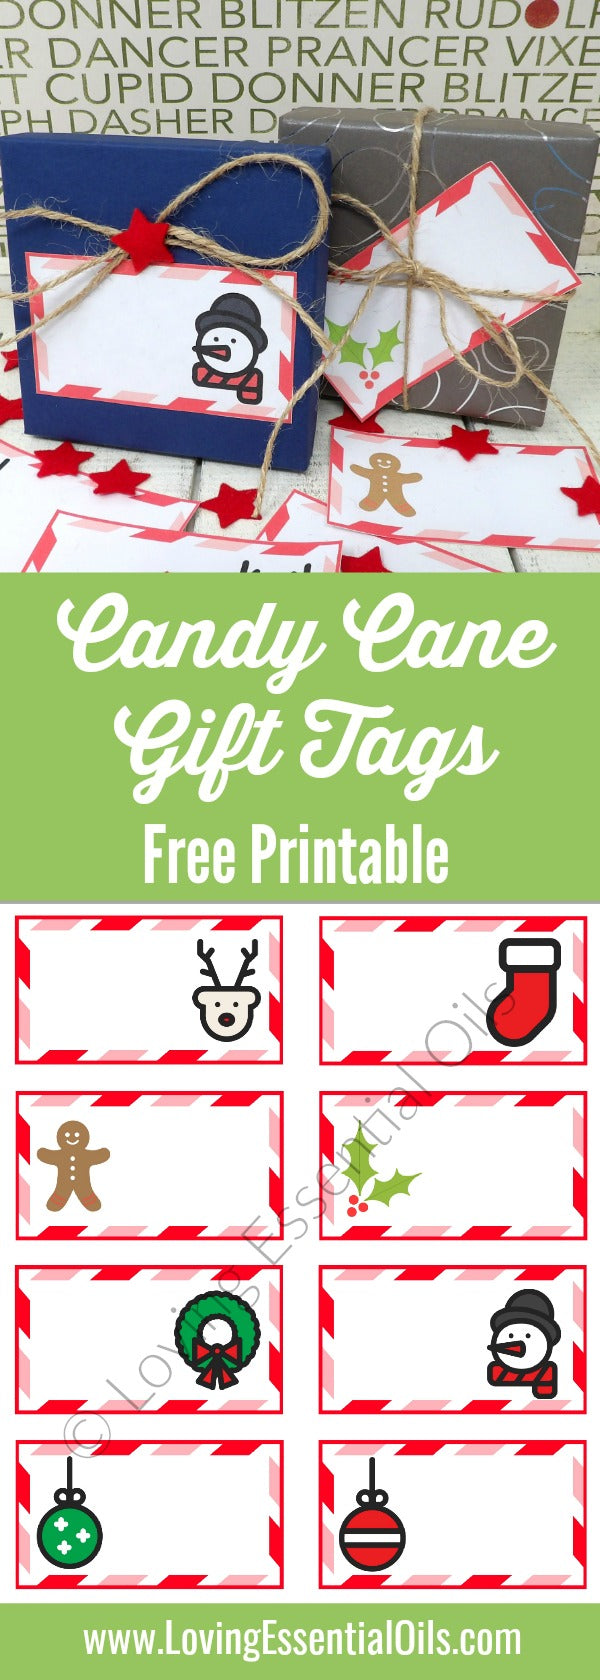 Free printable gift tags for christmas candy cane theme loving free printable gift tags for christmas candy cane theme by loving essential oils negle Image collections